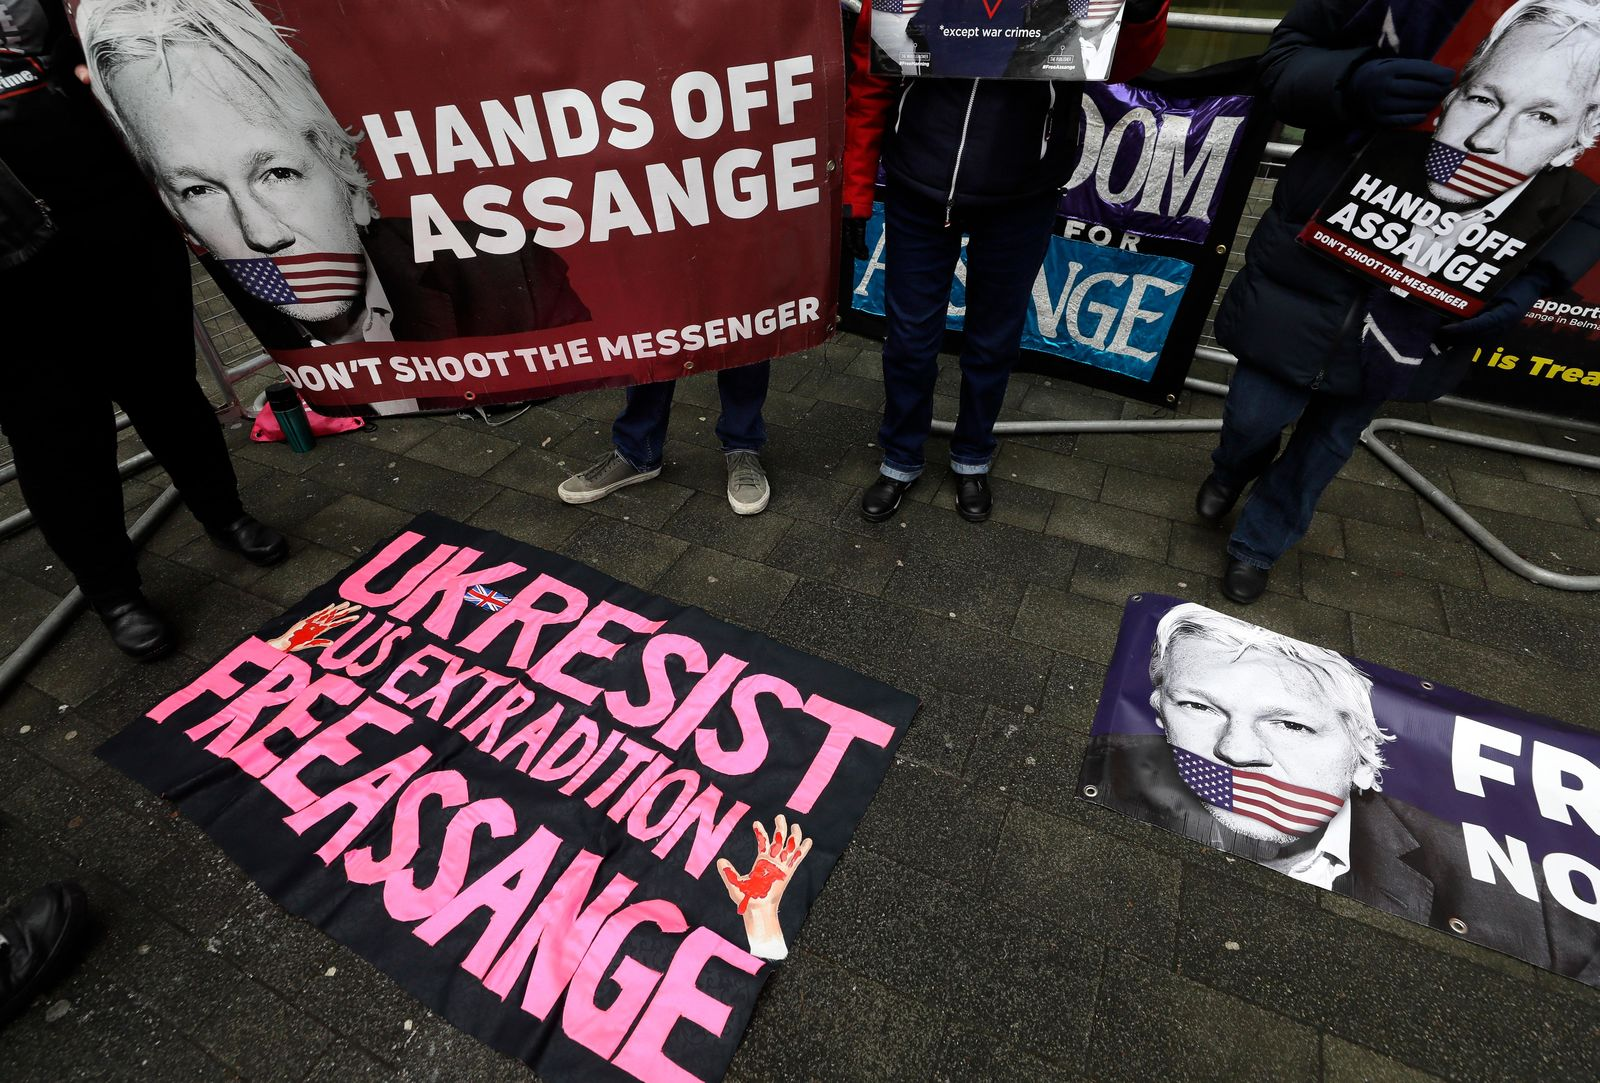 Demonstrators supporting Julian Assange hold banners outside Westminster Magistrates Court in London, Thursday, Jan. 23, 2020. (AP Photo/Kirsty Wigglesworth)